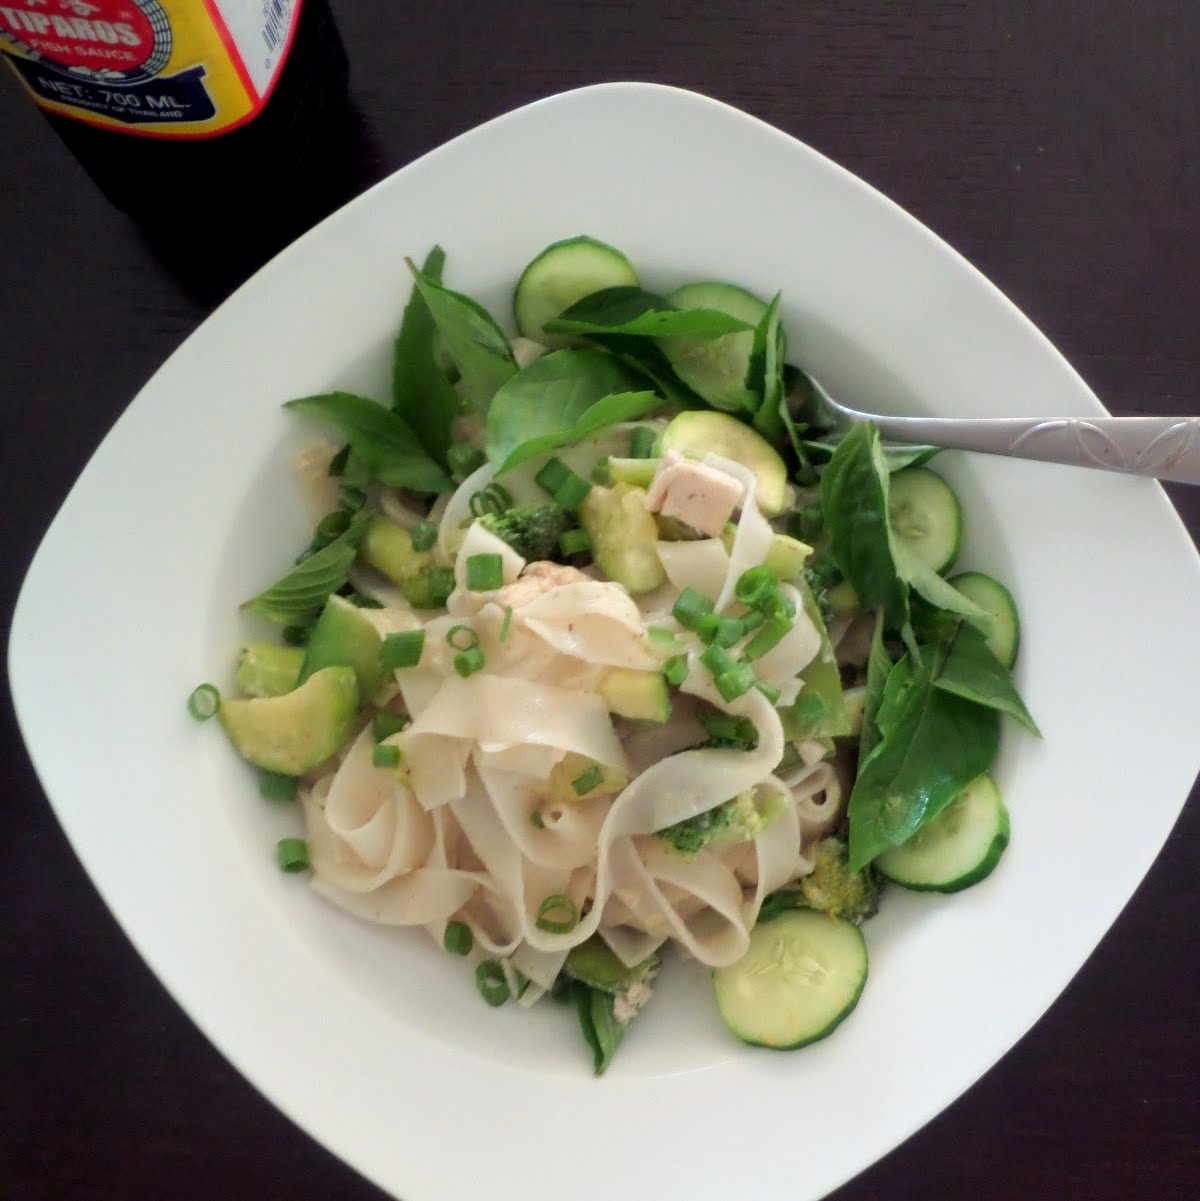 Chicken Green Curry Noodles:  A light and flavorful, but spicy, green curry with chicken, veggies, and broad rice noodles.